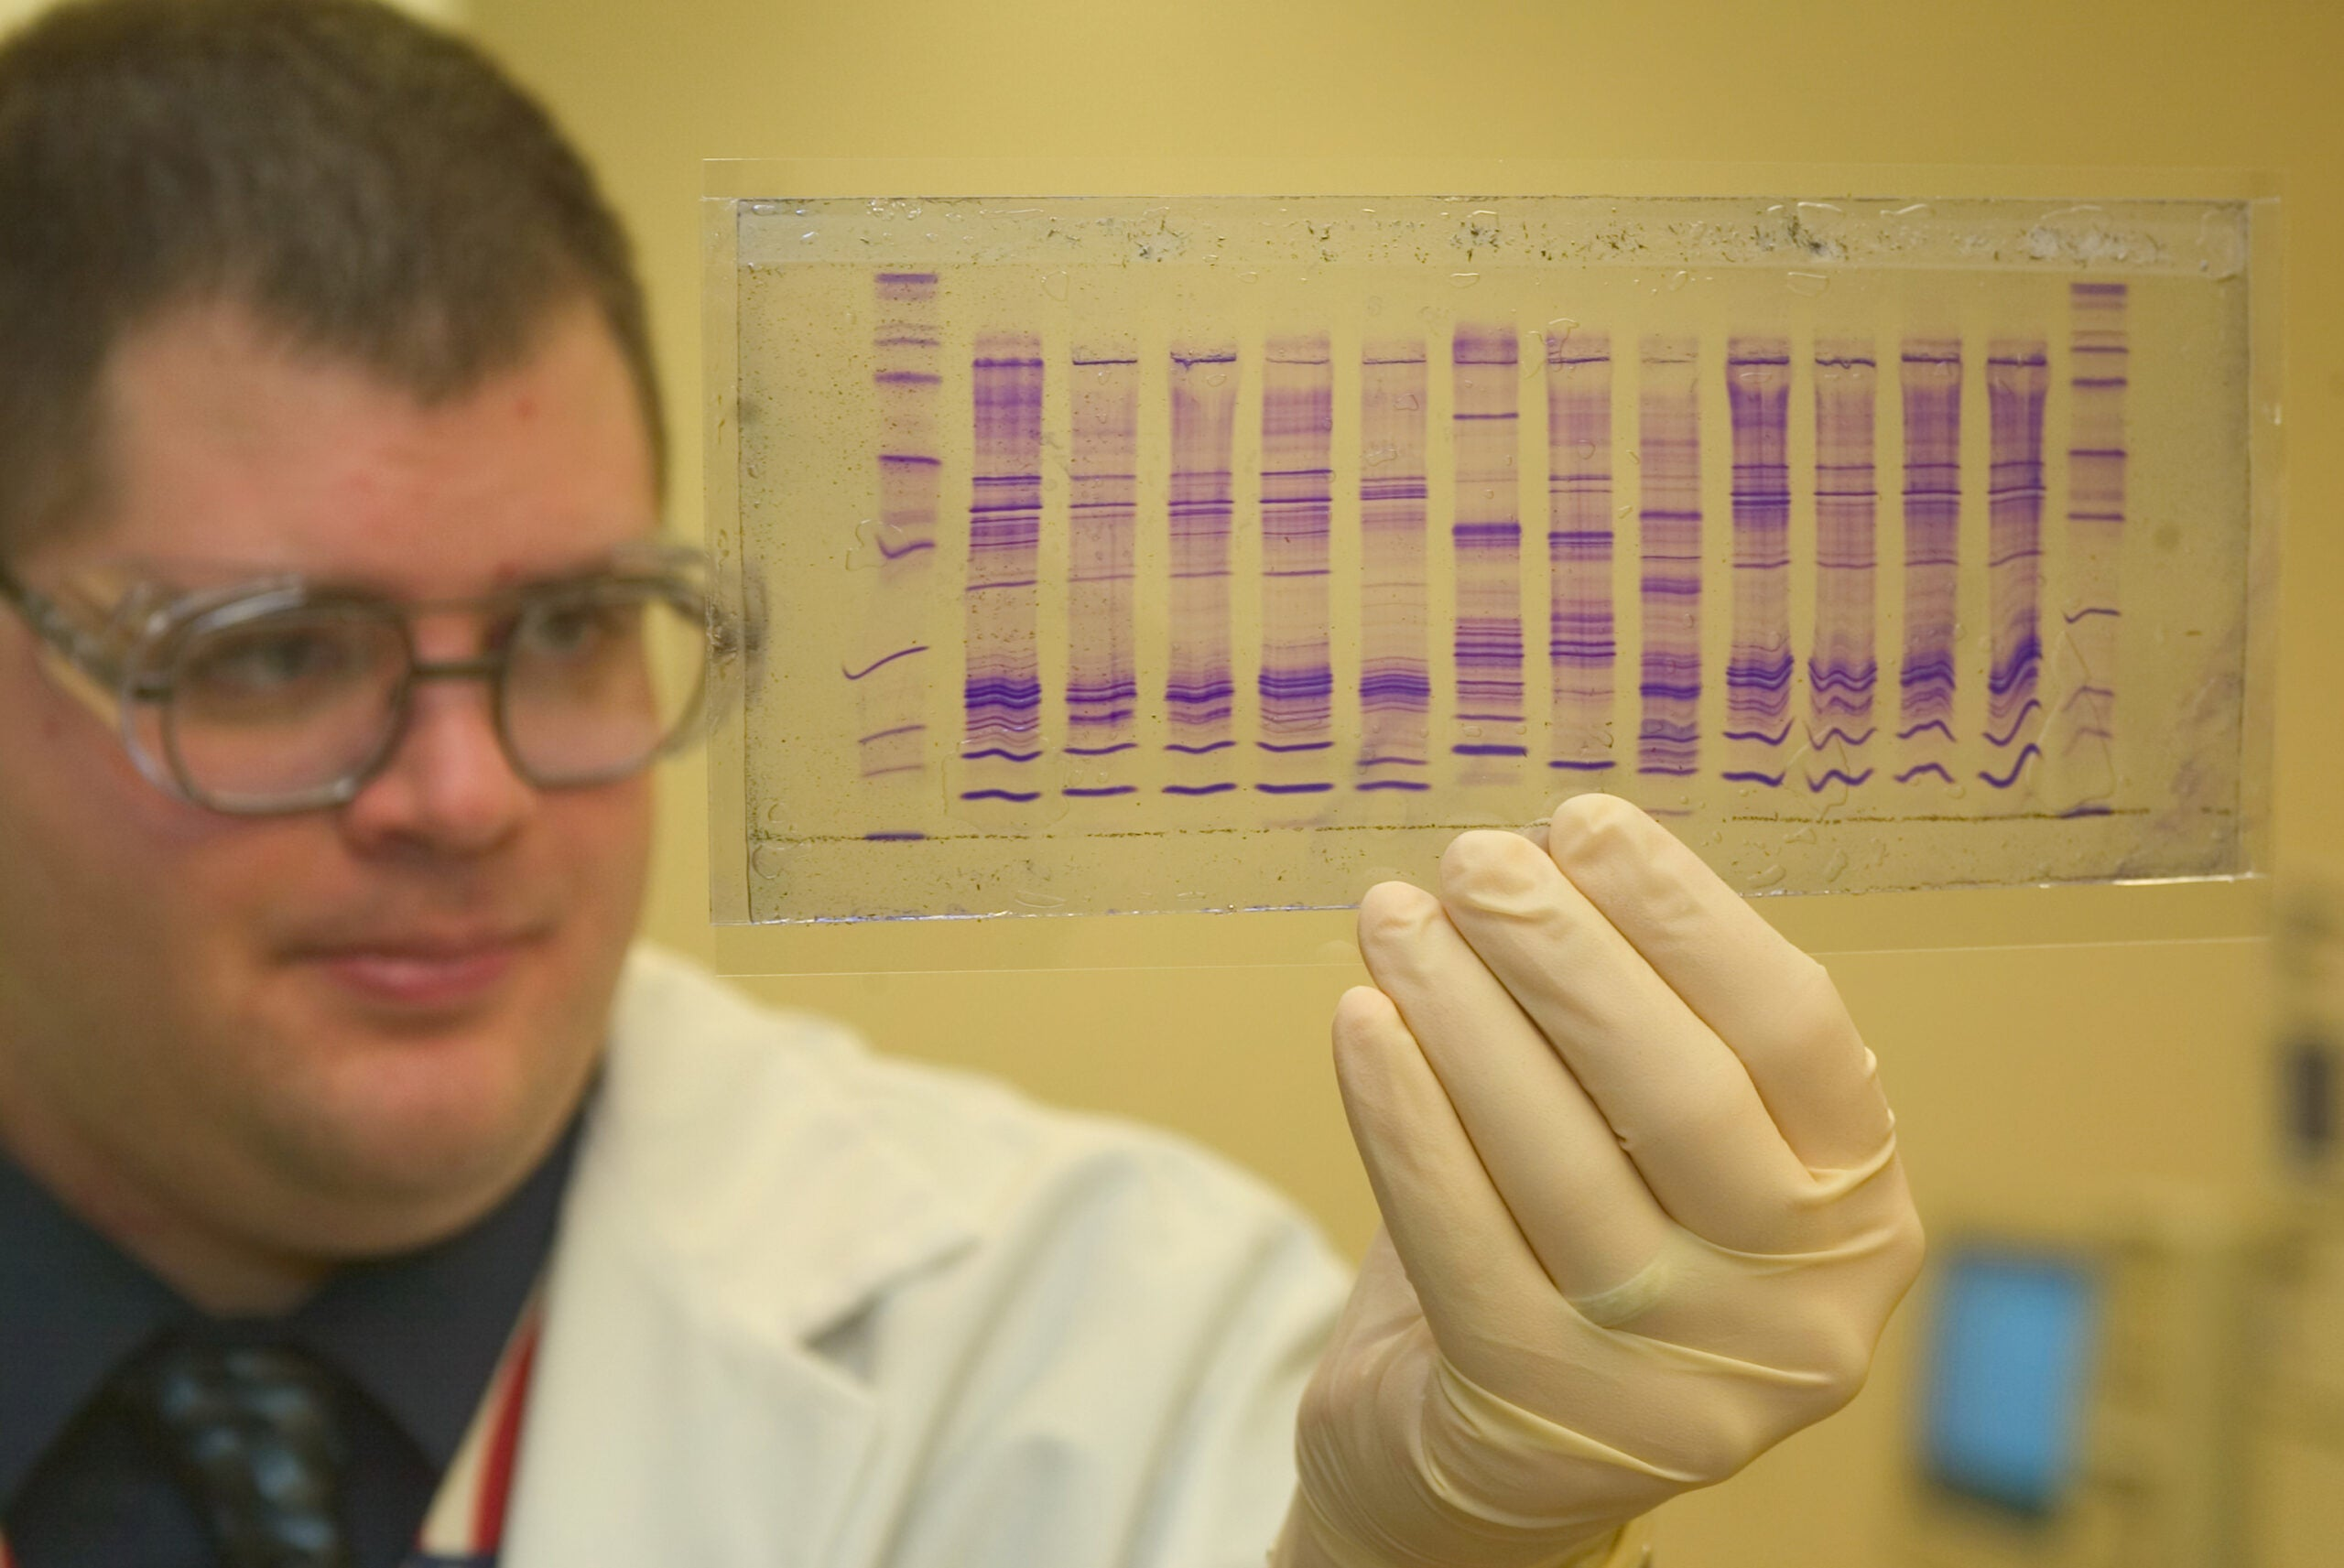 There's No Guarantee That Genetic Tests Are Accurate